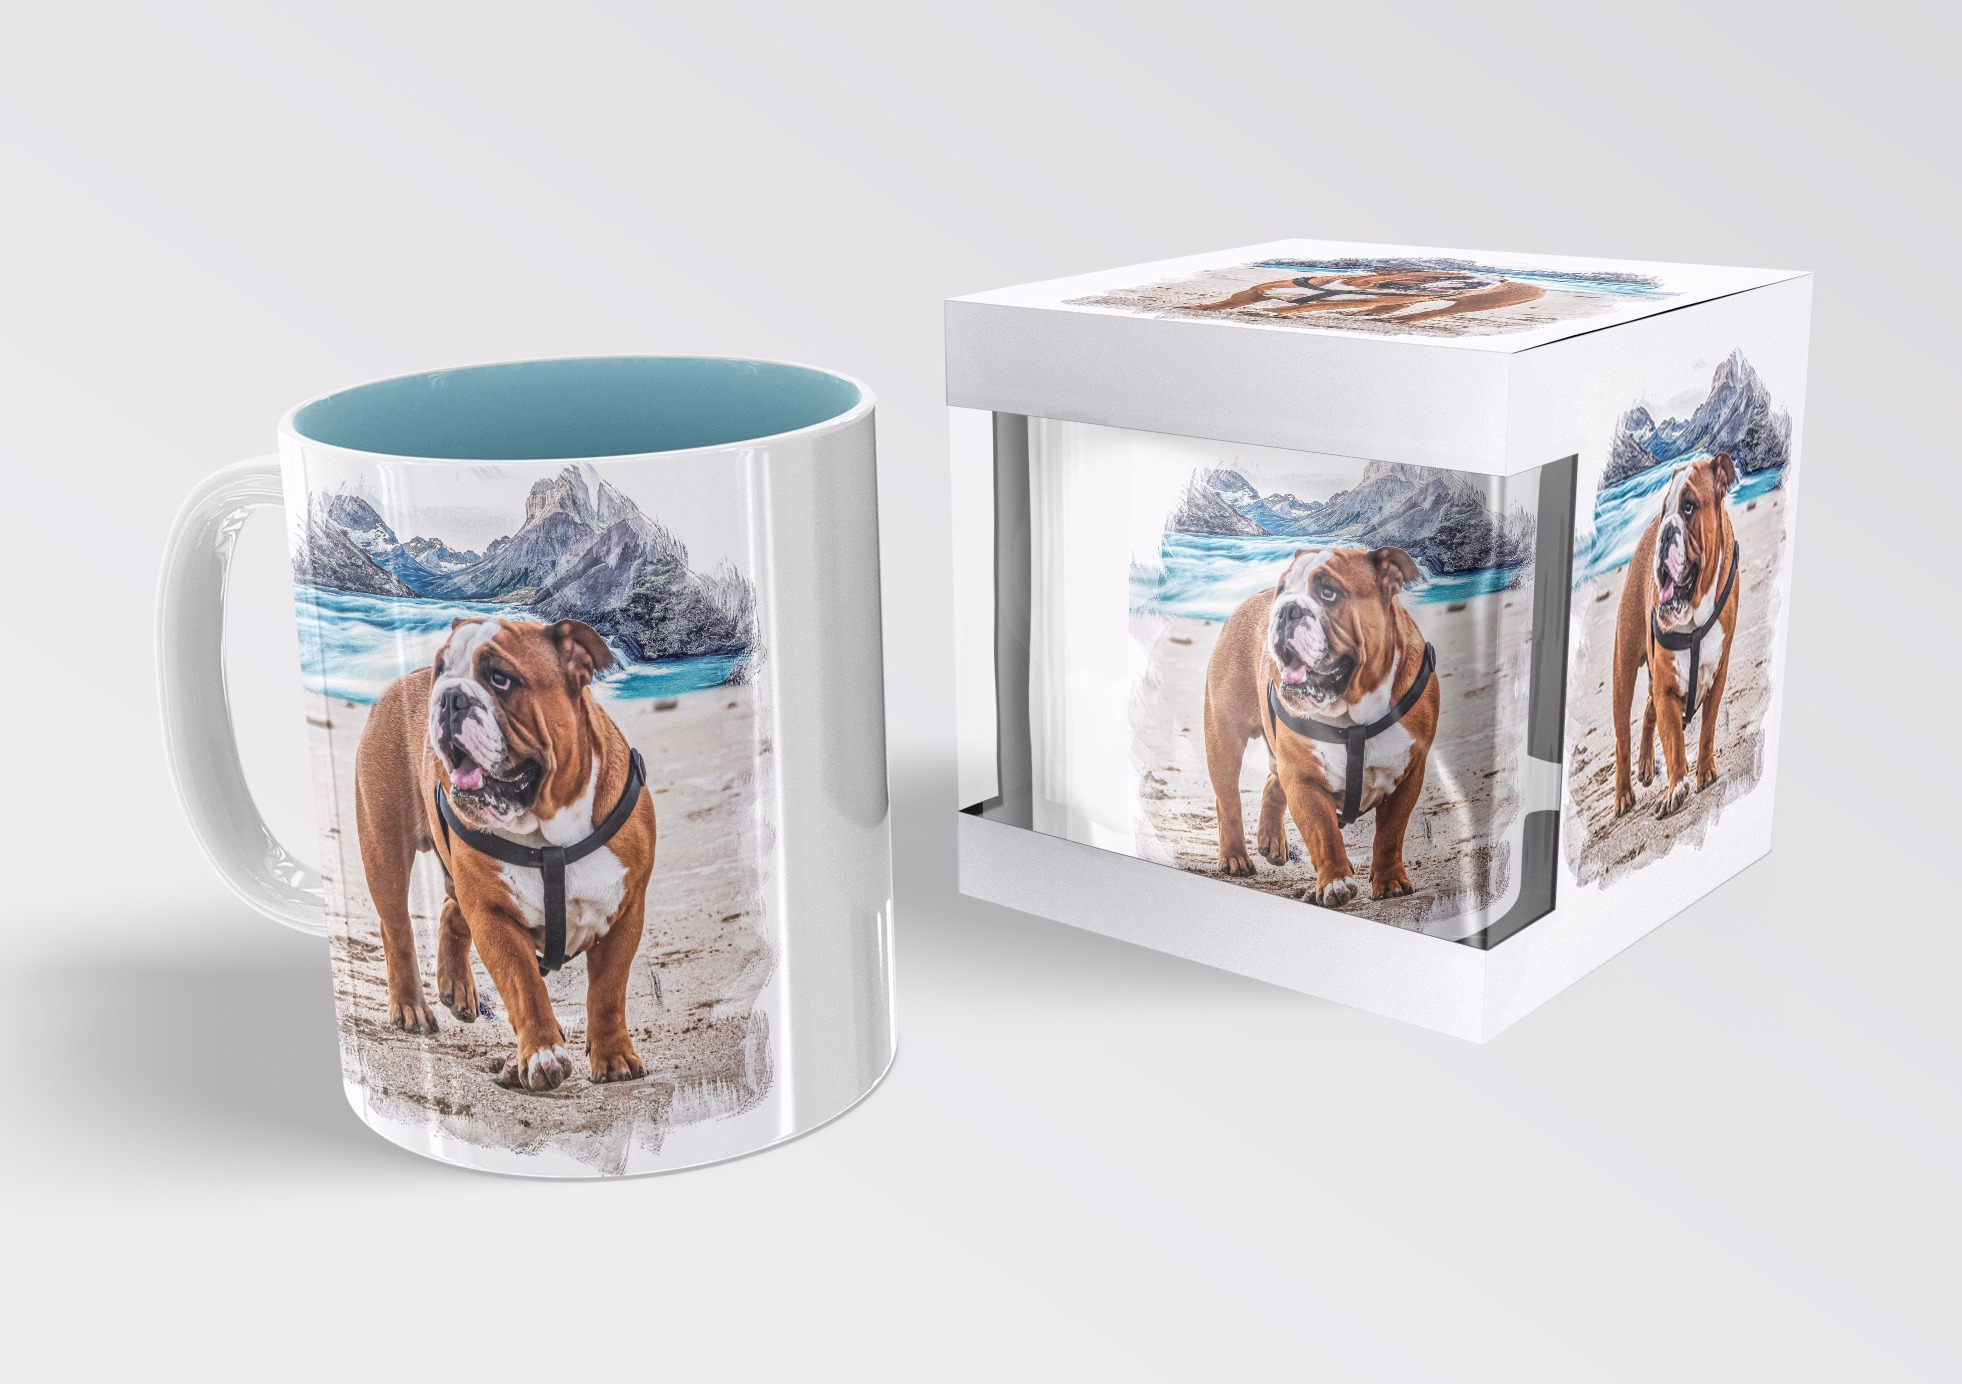 Graphic design for mug print